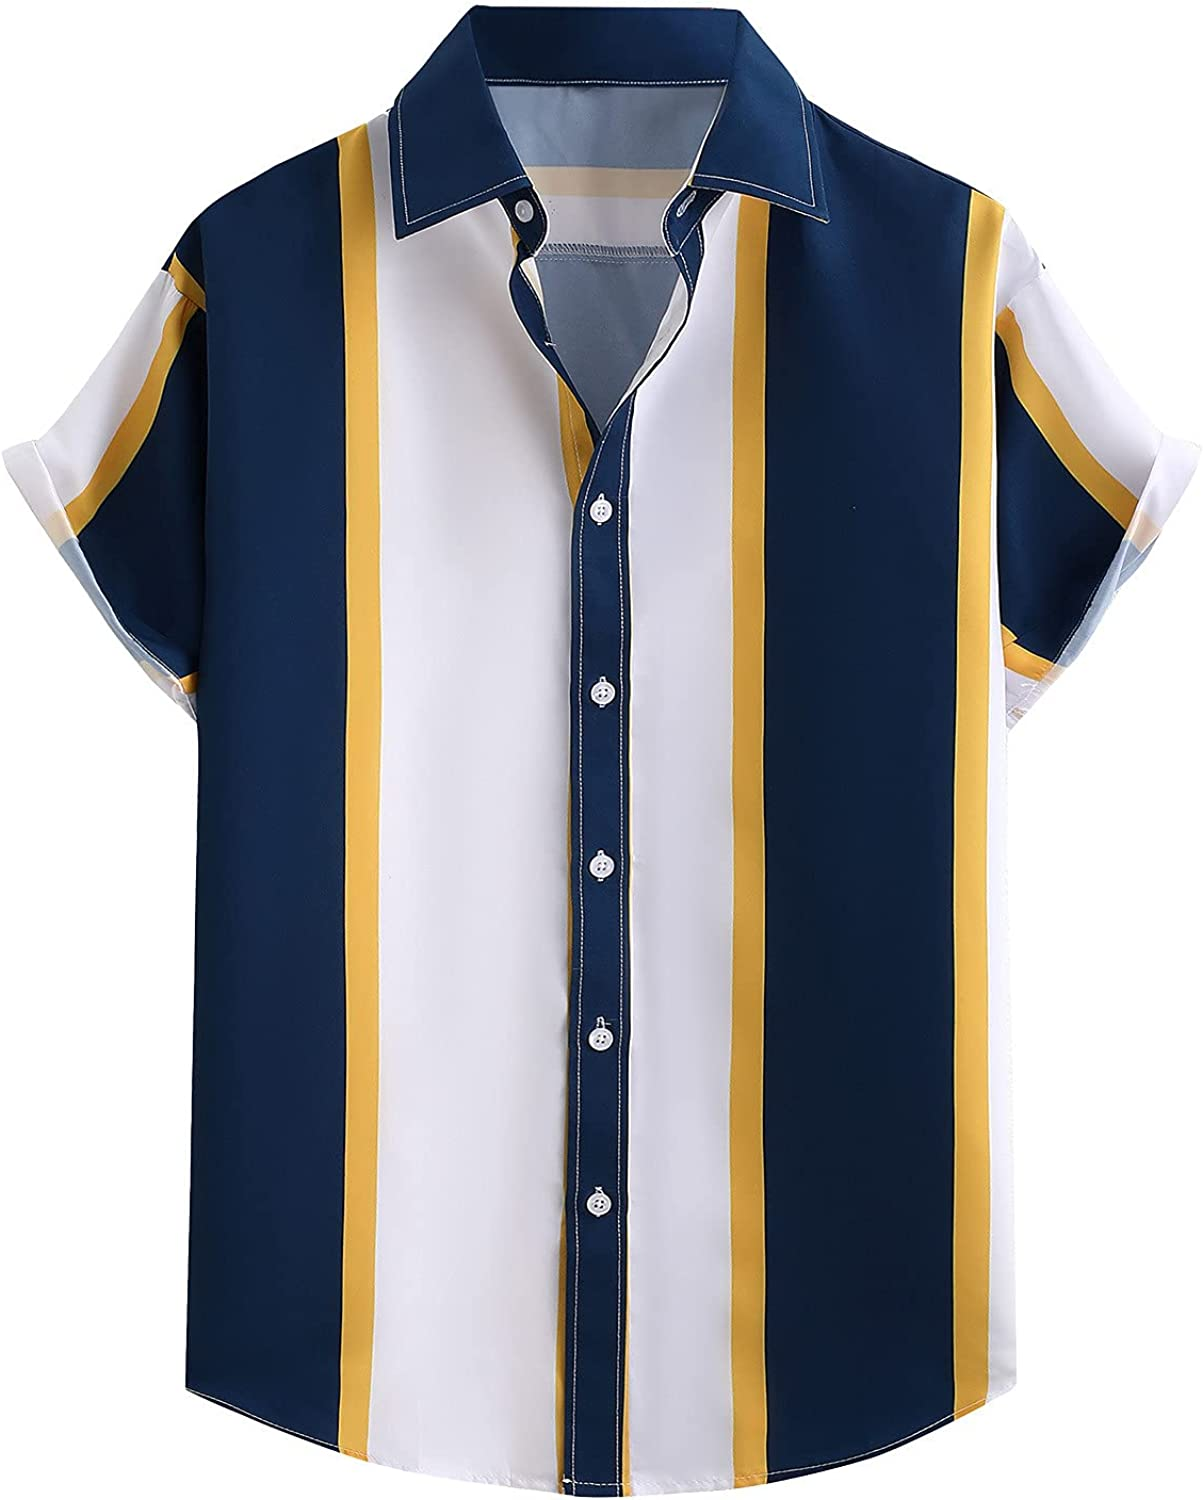 Mens top Men's Colorful Stripe Shirts Summer Short Sleeve Casual Loose Buttons Tee